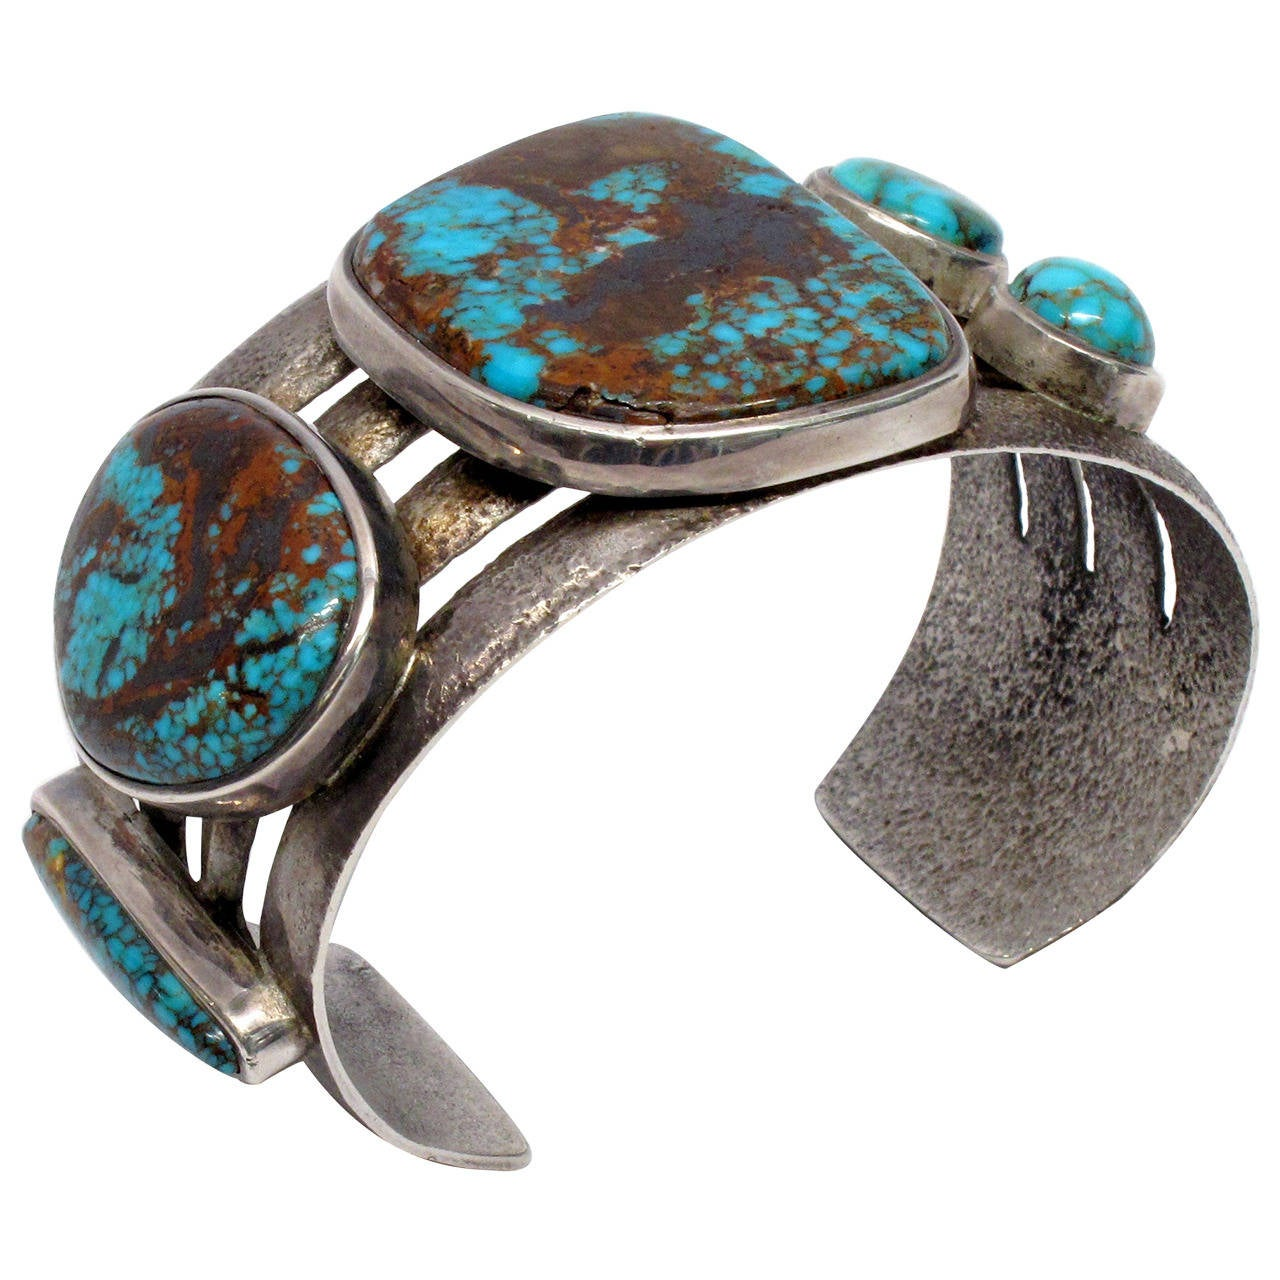 charles loloma jewelry charles loloma tufa turquoise cast silver bracelet at 1stdibs 6558